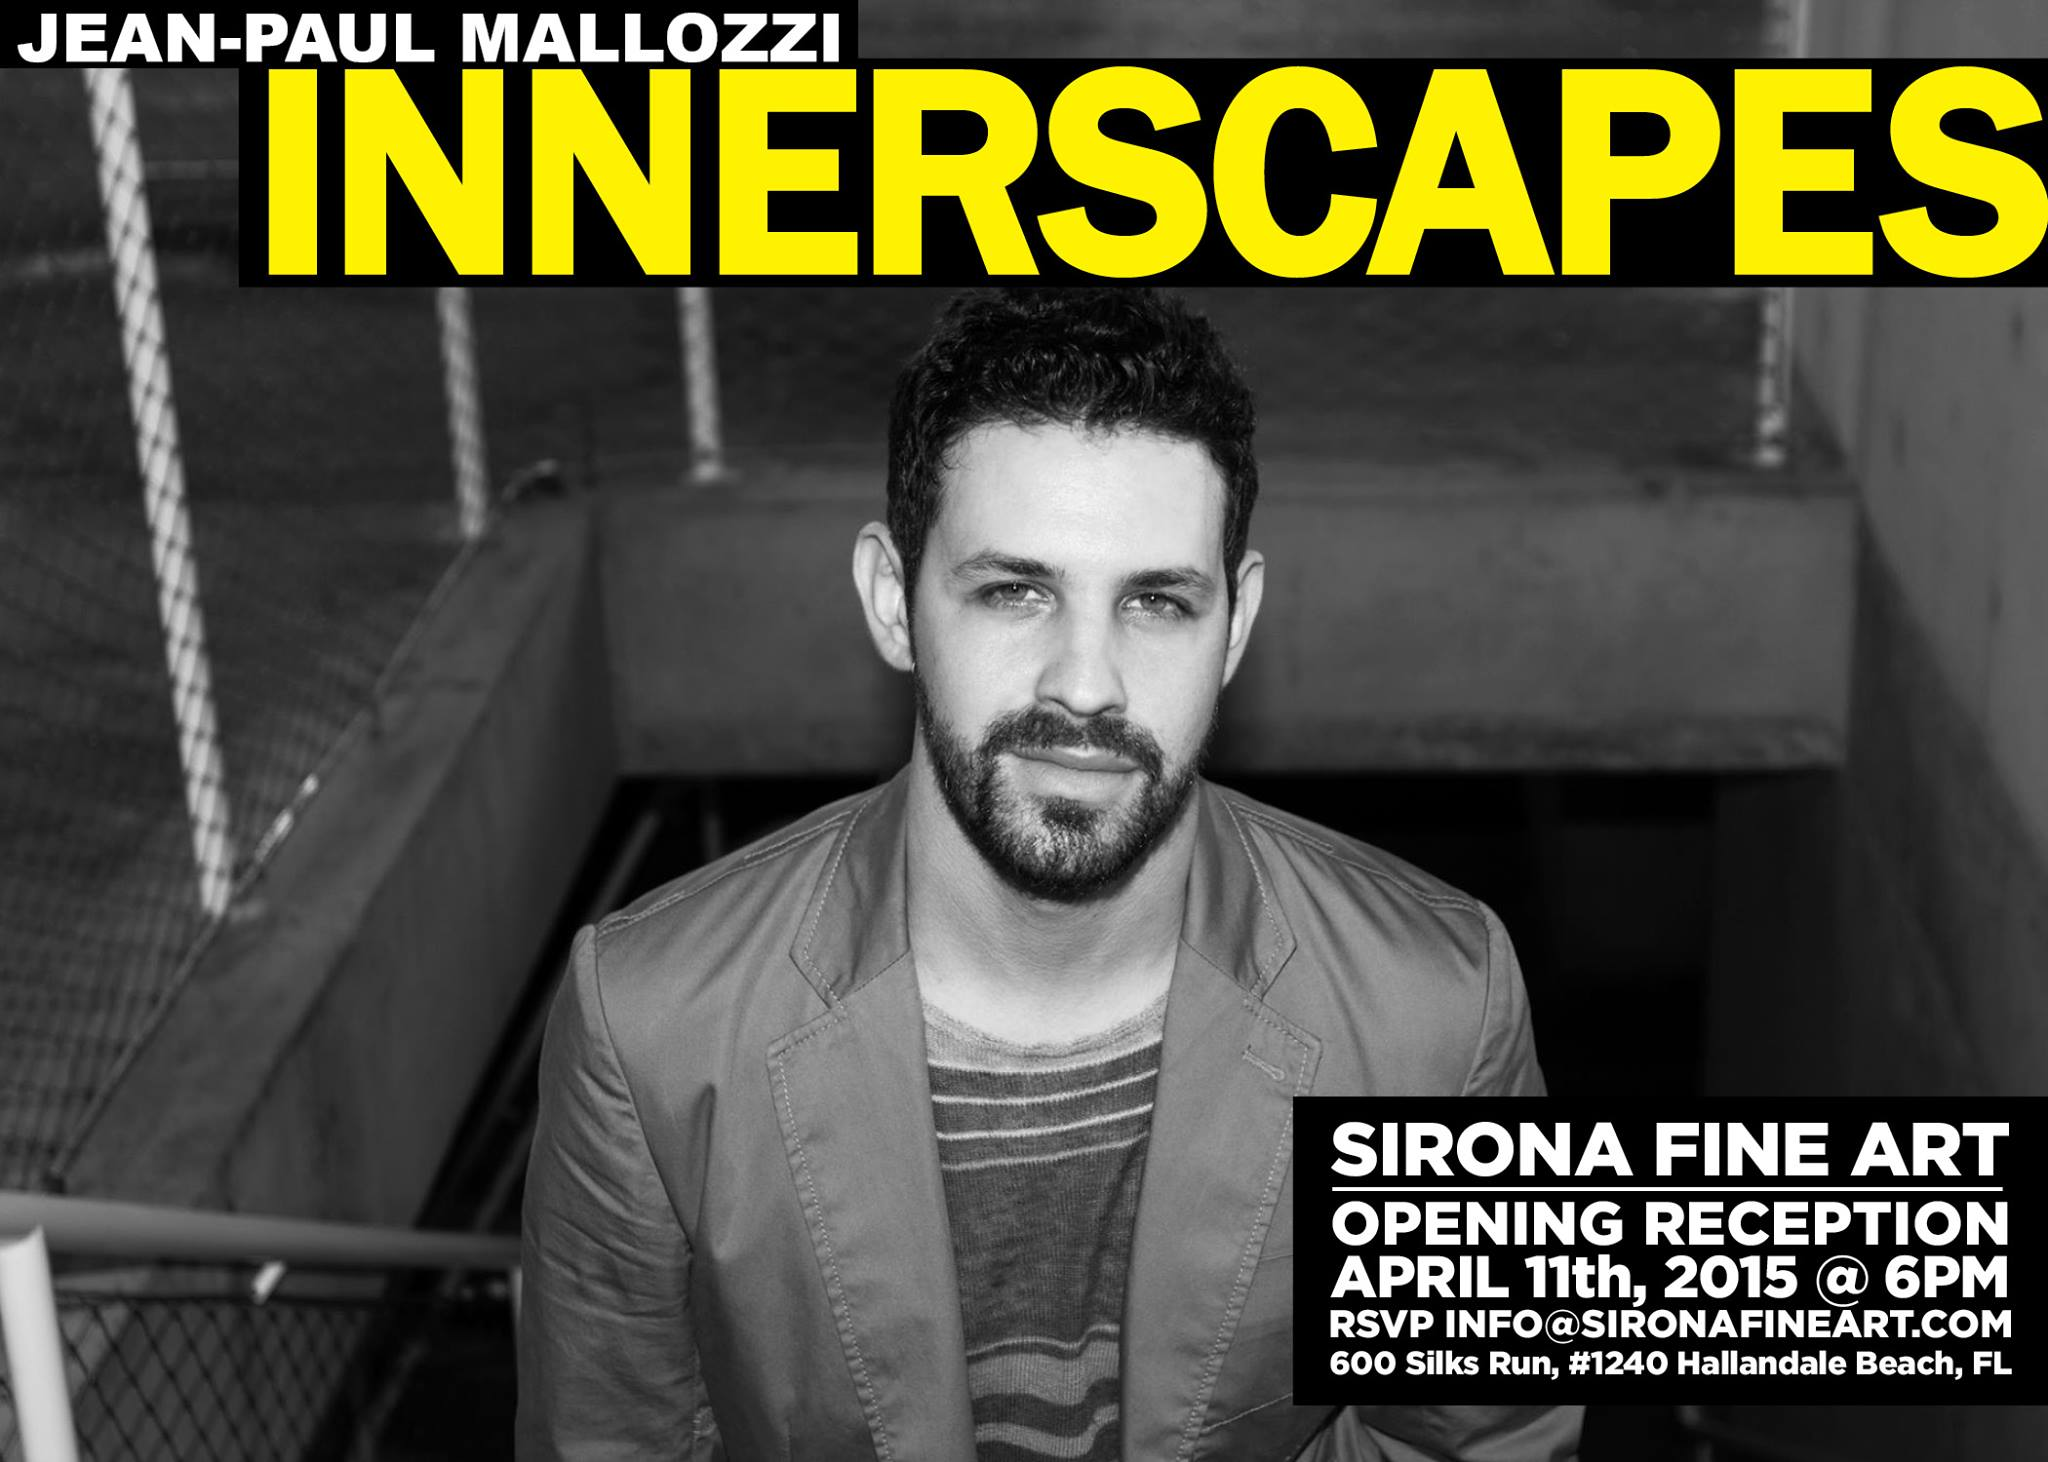 Sirona Fine Art Presents 'Innerscapes And Landscapes